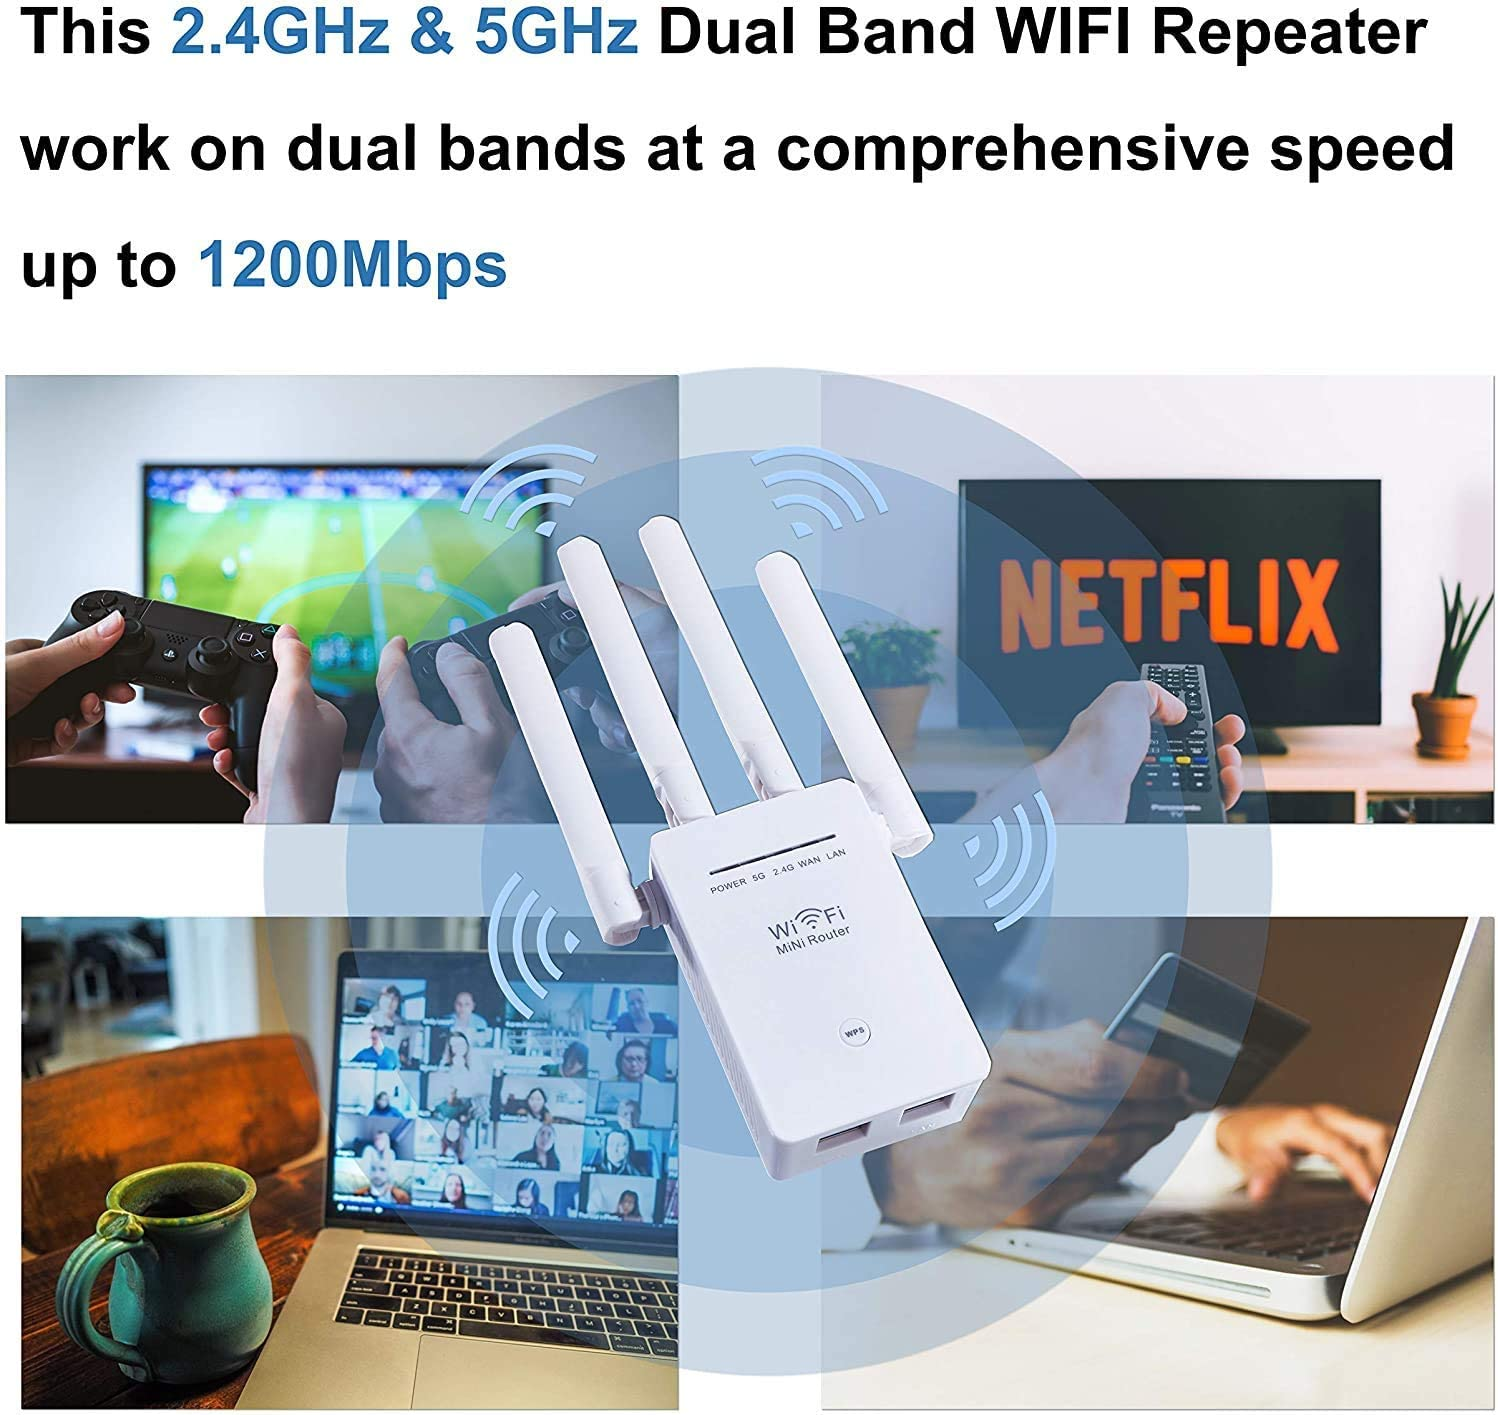 WiFi Range Extender, 1200Mbps WiFi Signal Booster, 5G & 2.4G Wireless WiFi Repeater with High-Speed & Wide Range Signals (1200mbps) (Renewed)